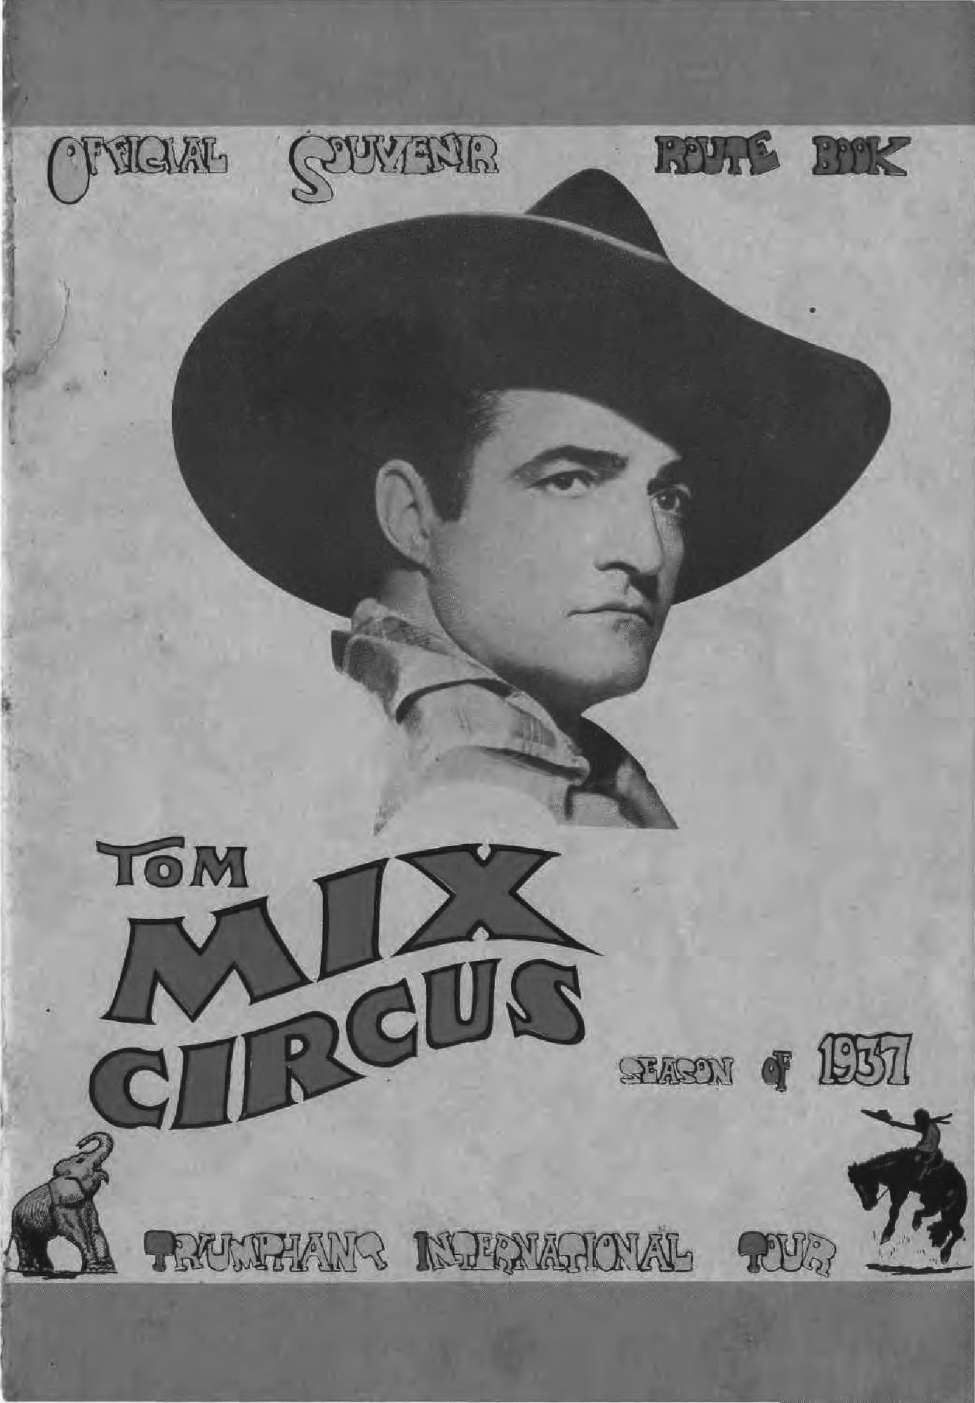 Comic Book Cover For Tom Mix Circus Souvenir Route Book - 1937